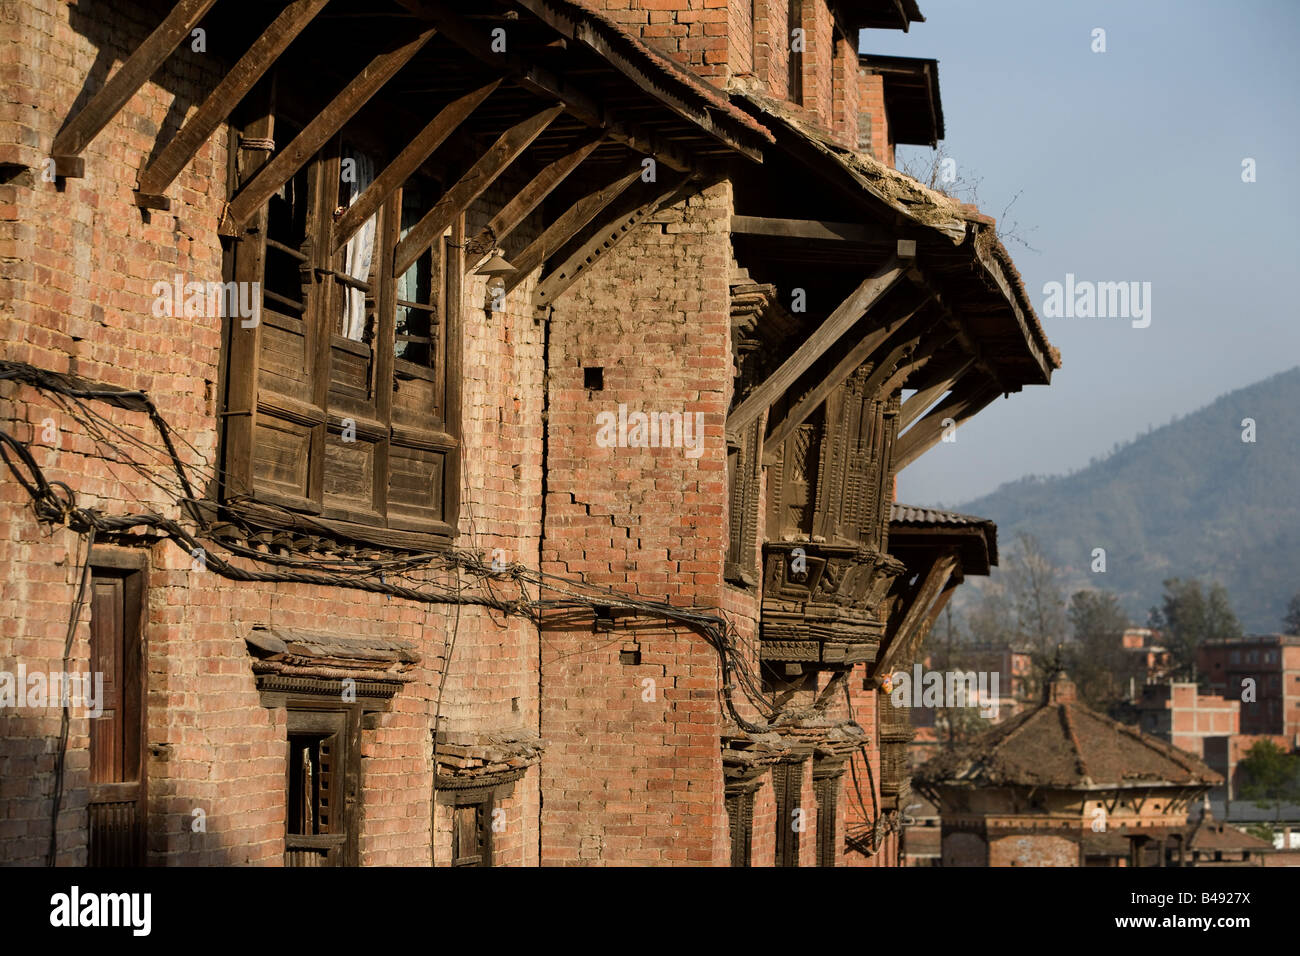 Ancient city of Bhaktapur Durbar Square, Nepal - Stock Image